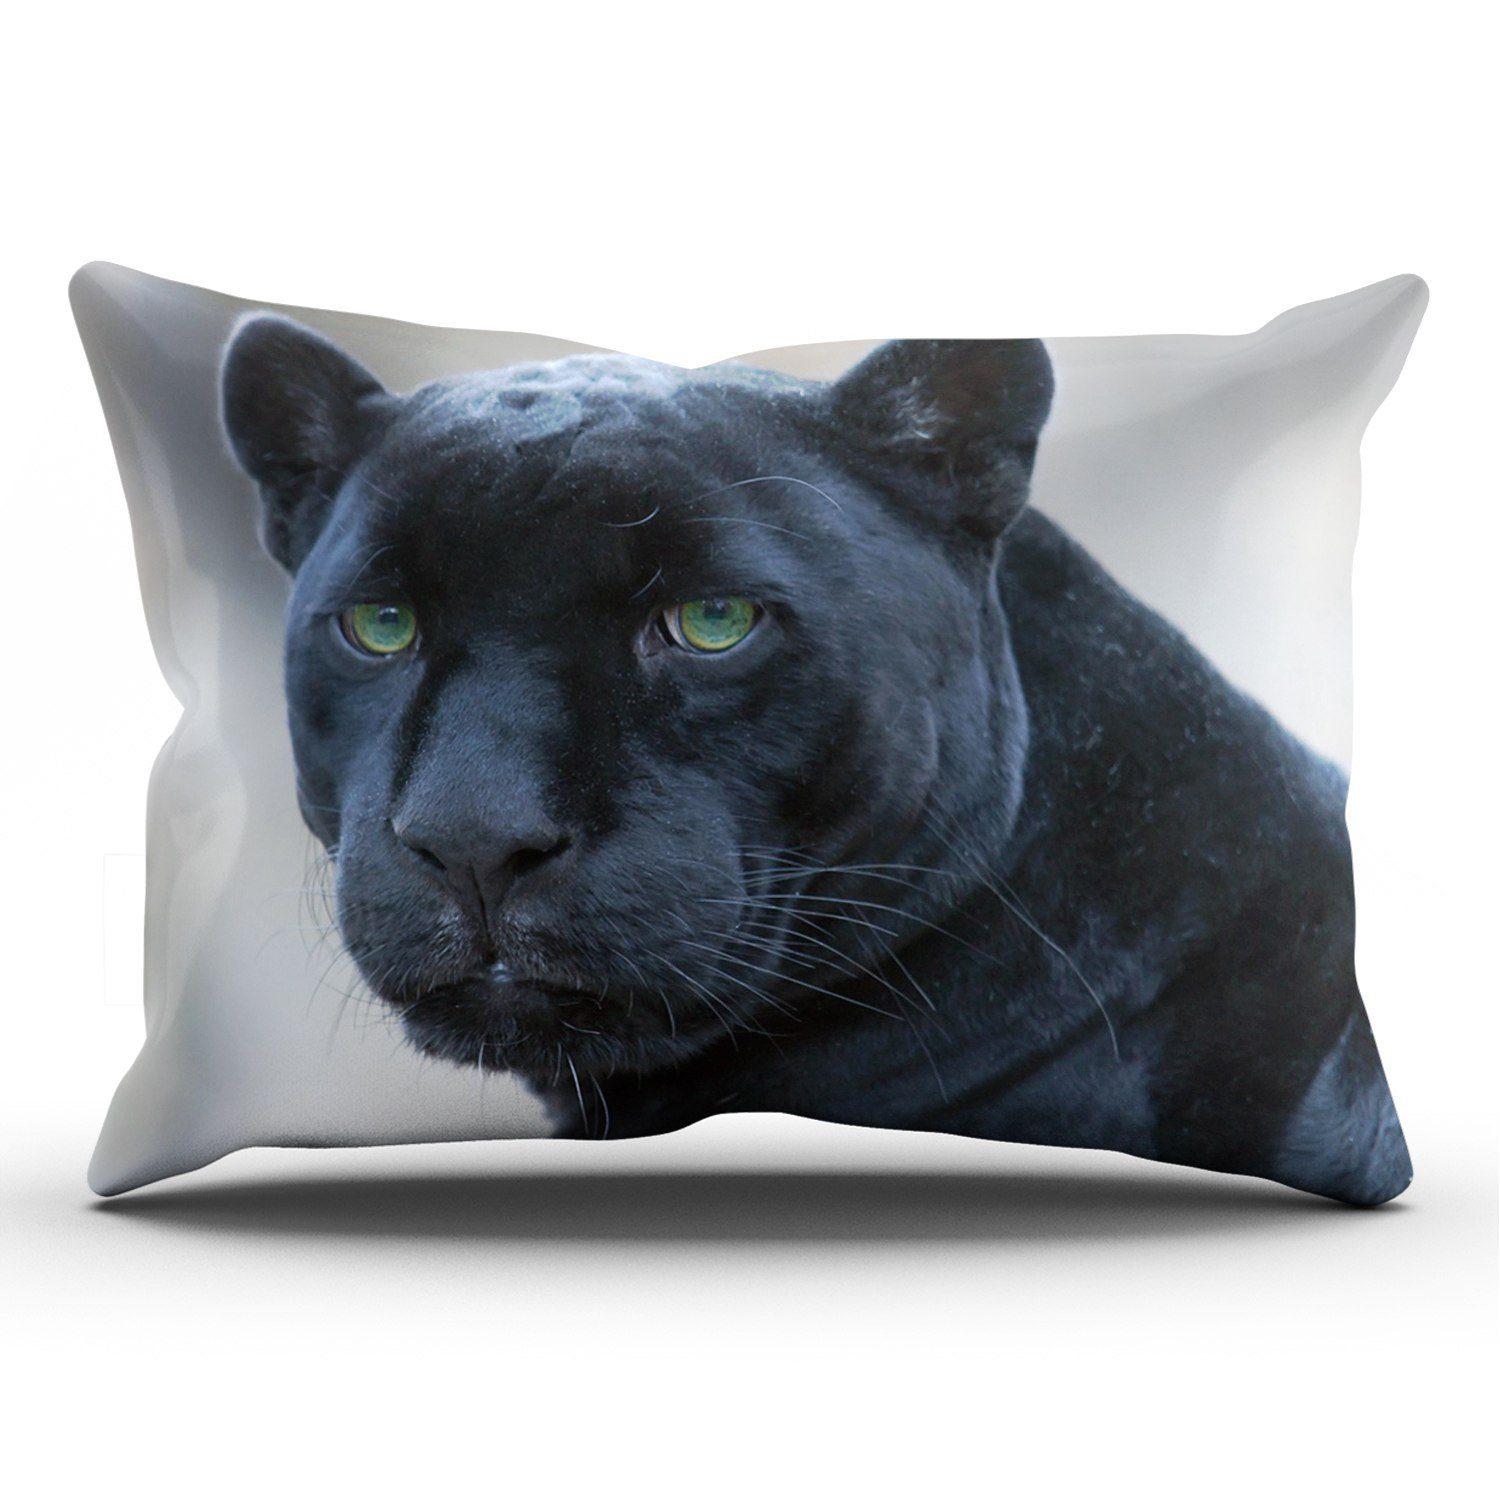 KEIBIKE Personalized Animals Jaguar Black Panther Rectangle Decorative Pillowcases Fashion Zippered King Pillow Covers Cases 20x36 Inches One Sided